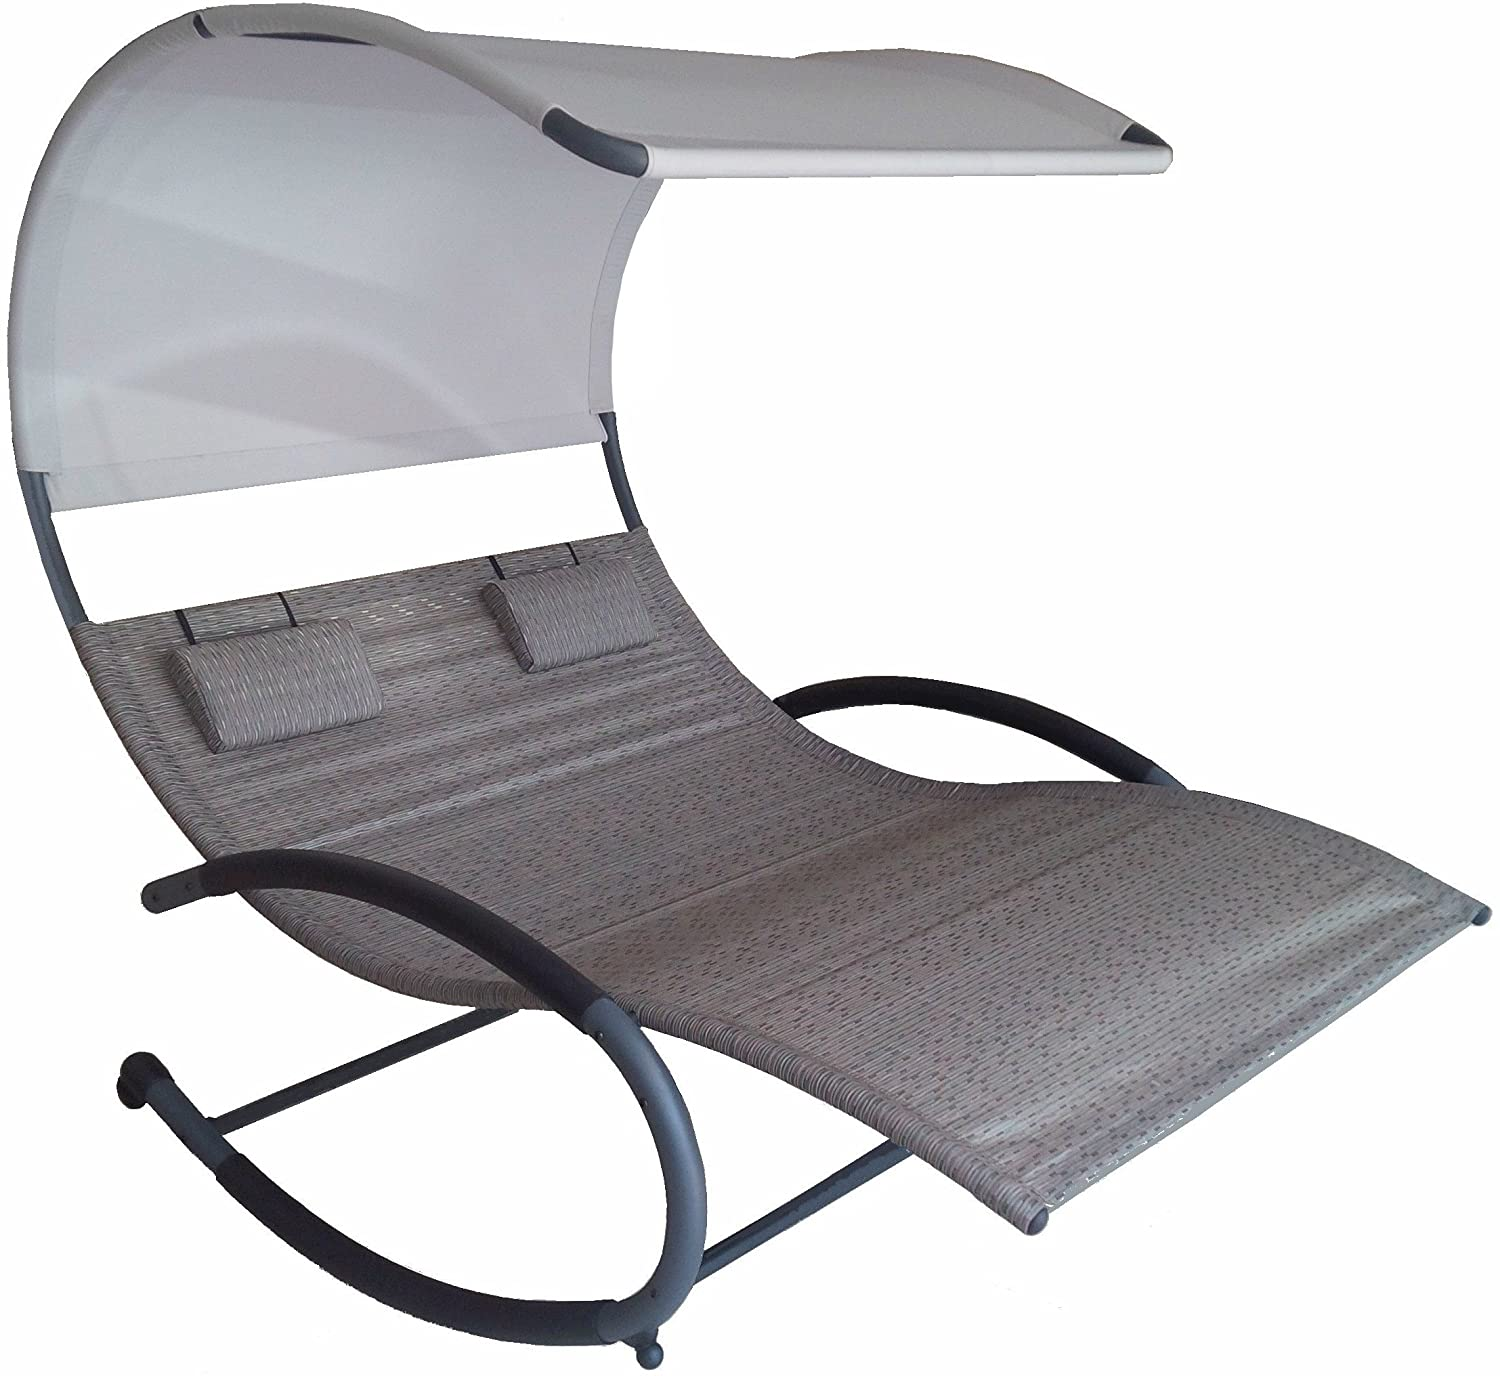 sc 1 st  Amazon.com & Amazon.com : Vivere Double Chaise Rocker Sienna : Garden u0026 Outdoor